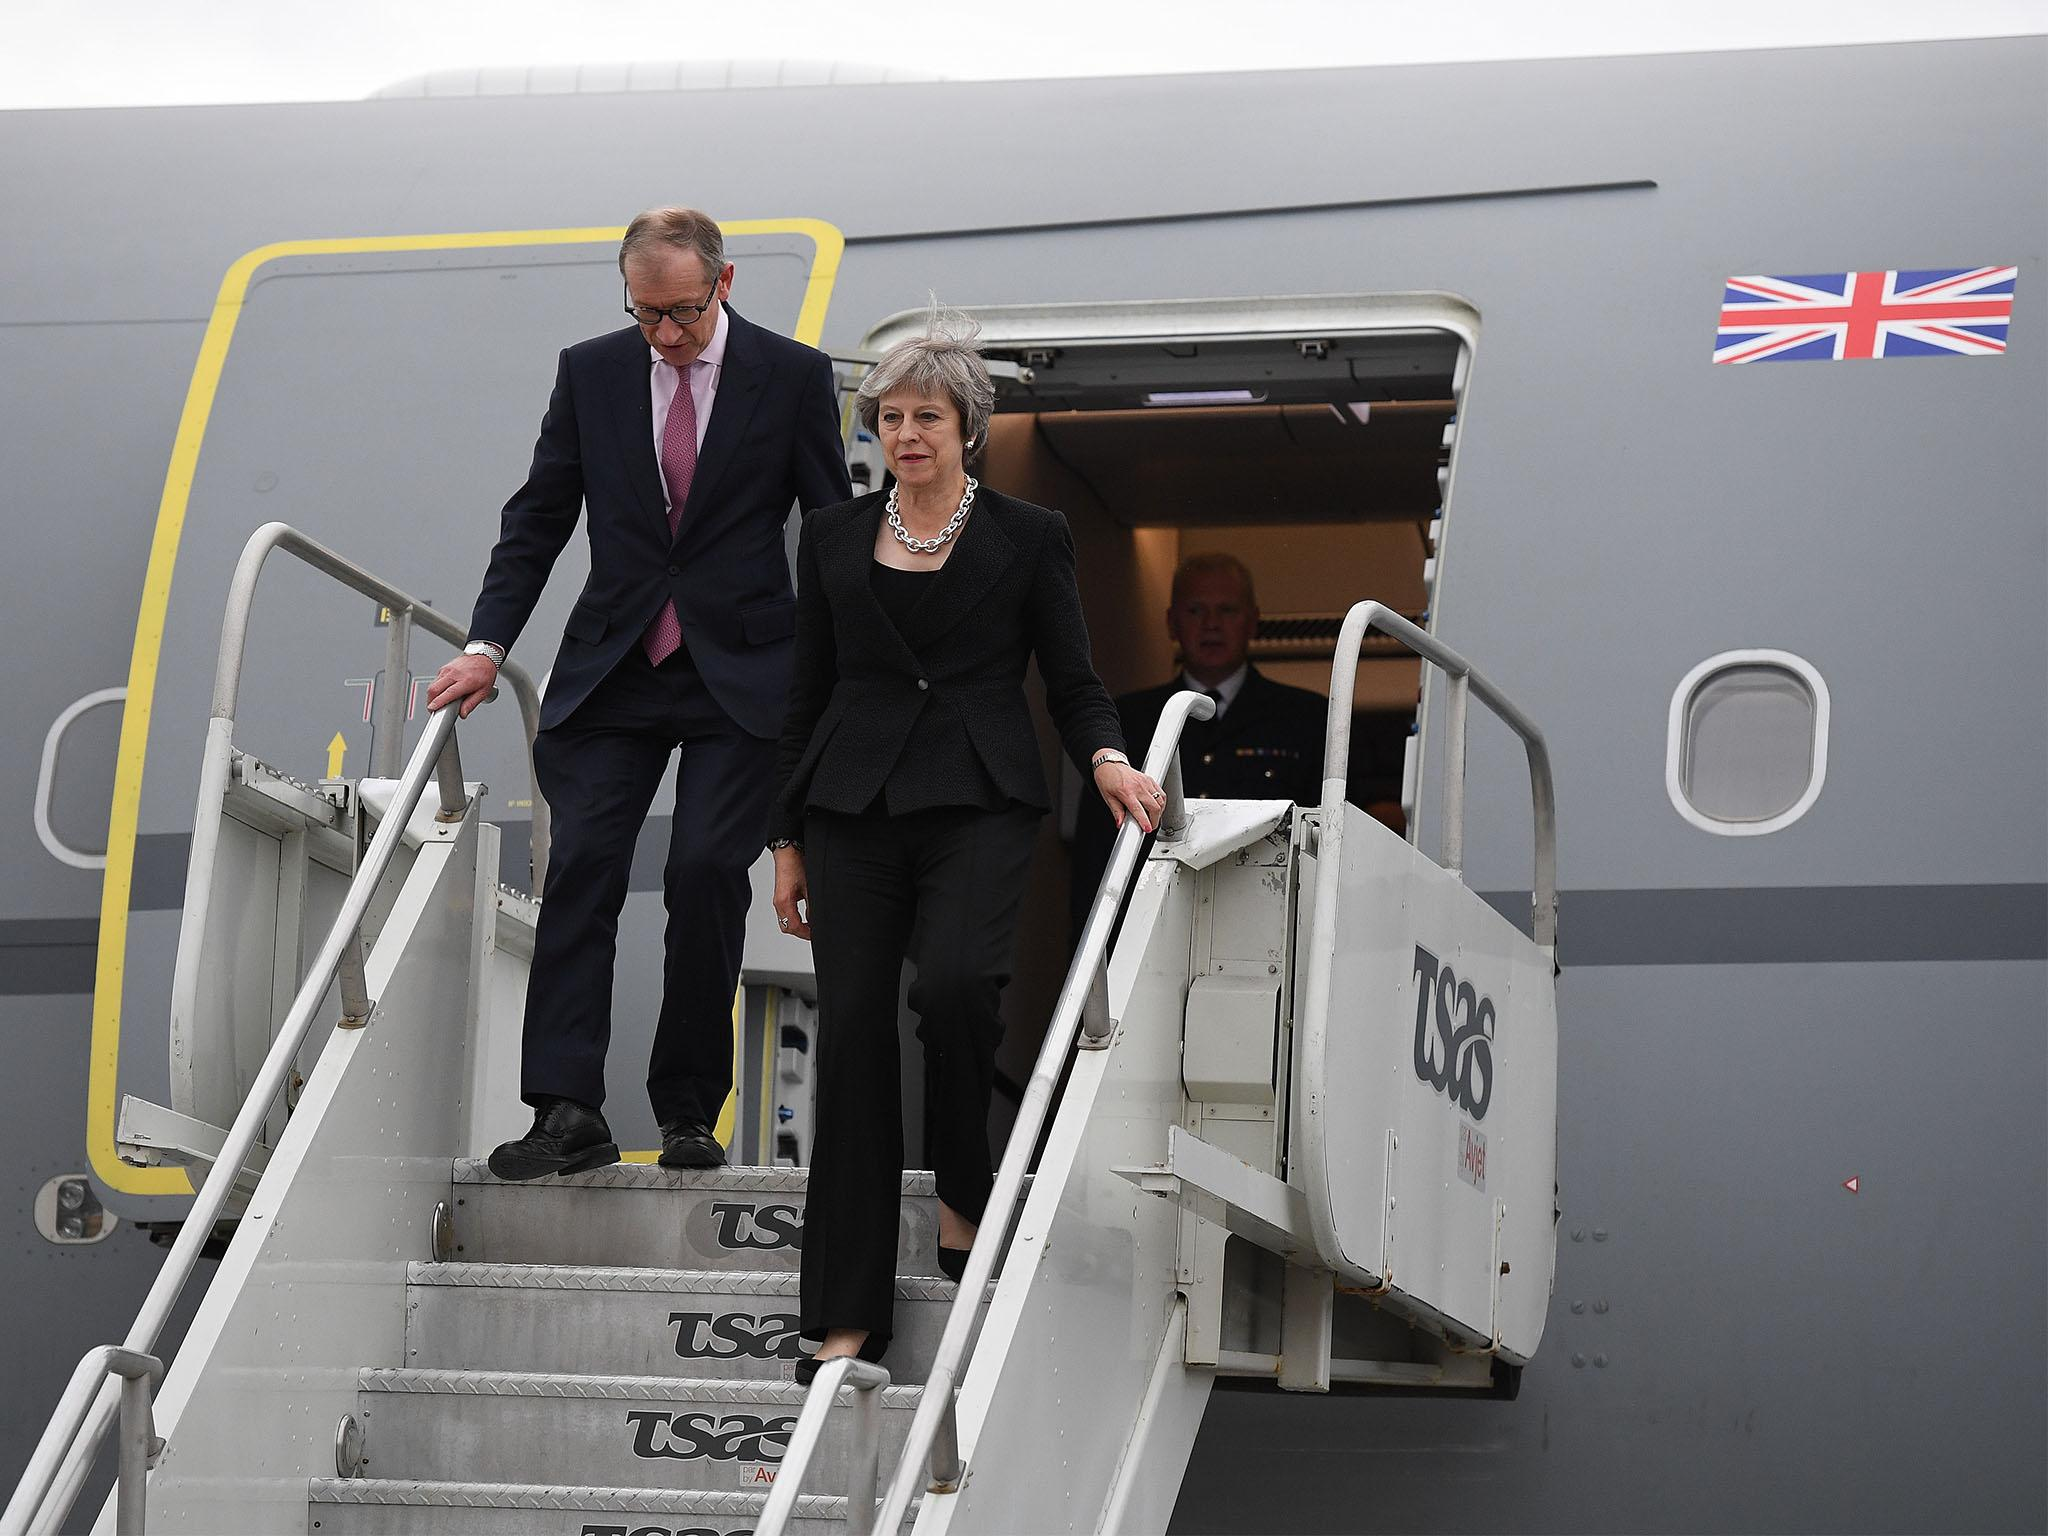 May defends Trump after he declines formal meeting at G7 summit